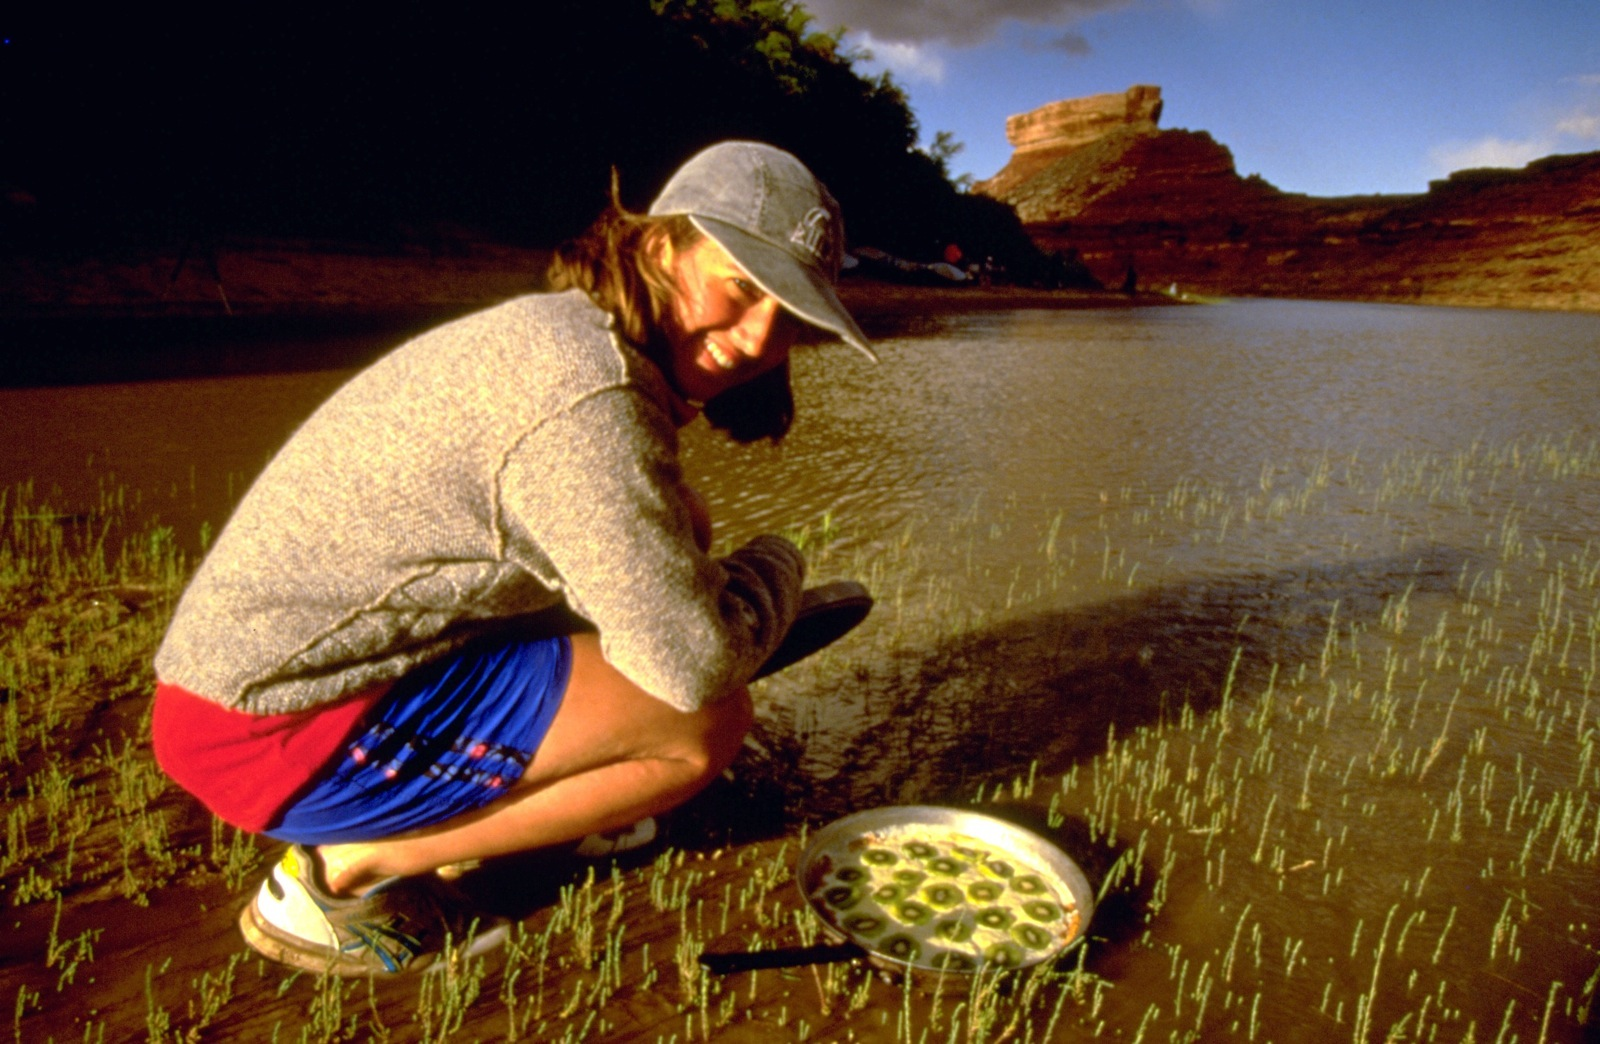 A participant puts the pan of dessert in the Green River to cool before eating.